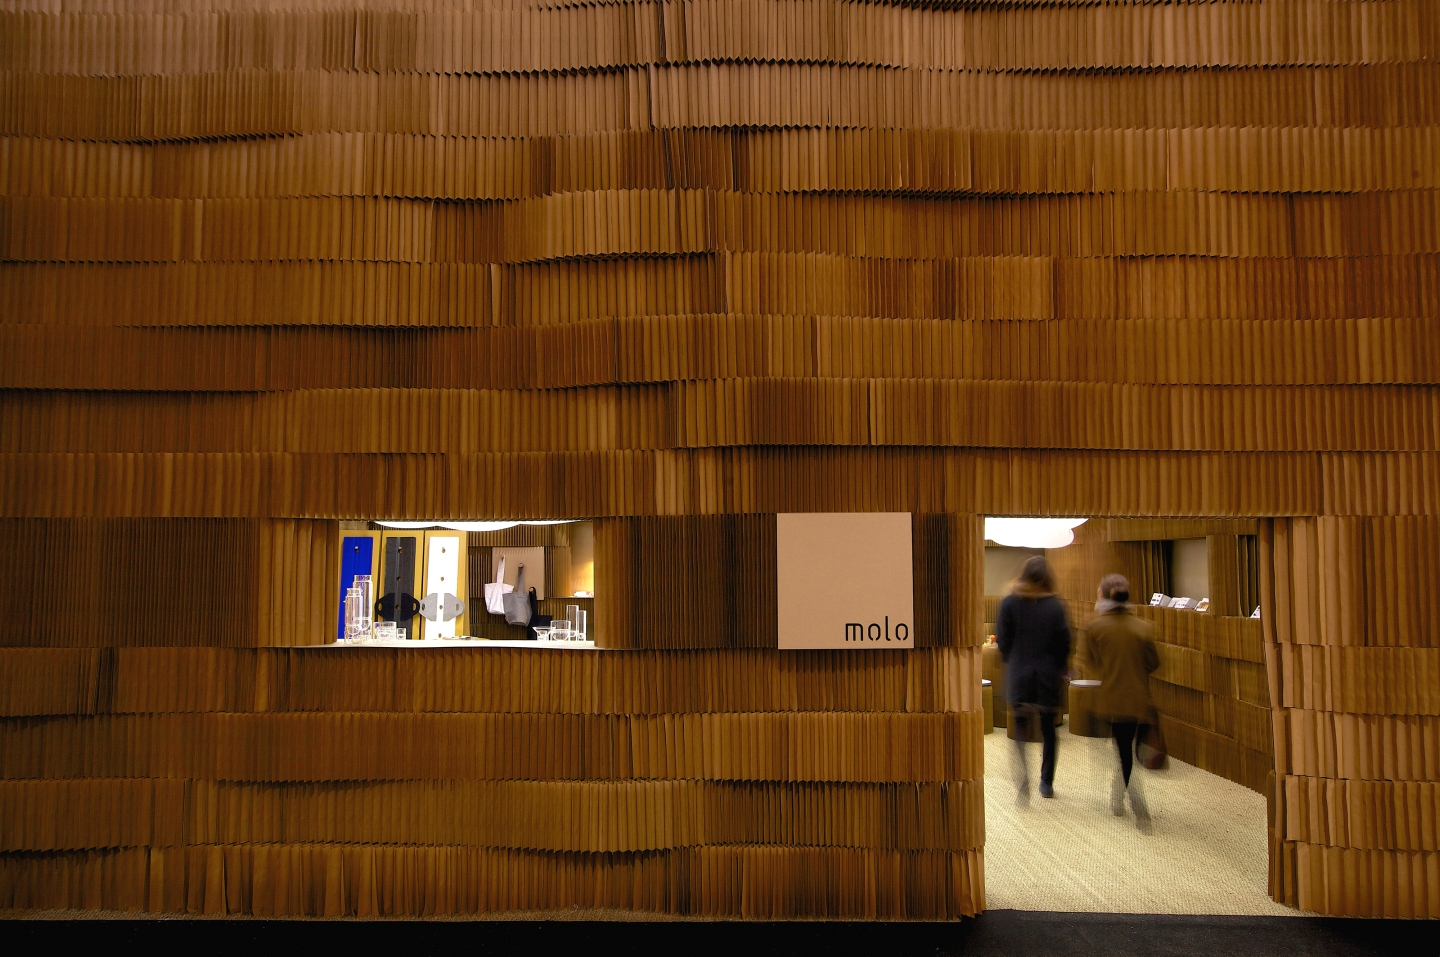 massive modular wall partition display - A wealth of textures created by undulating layers of paper softblocks.